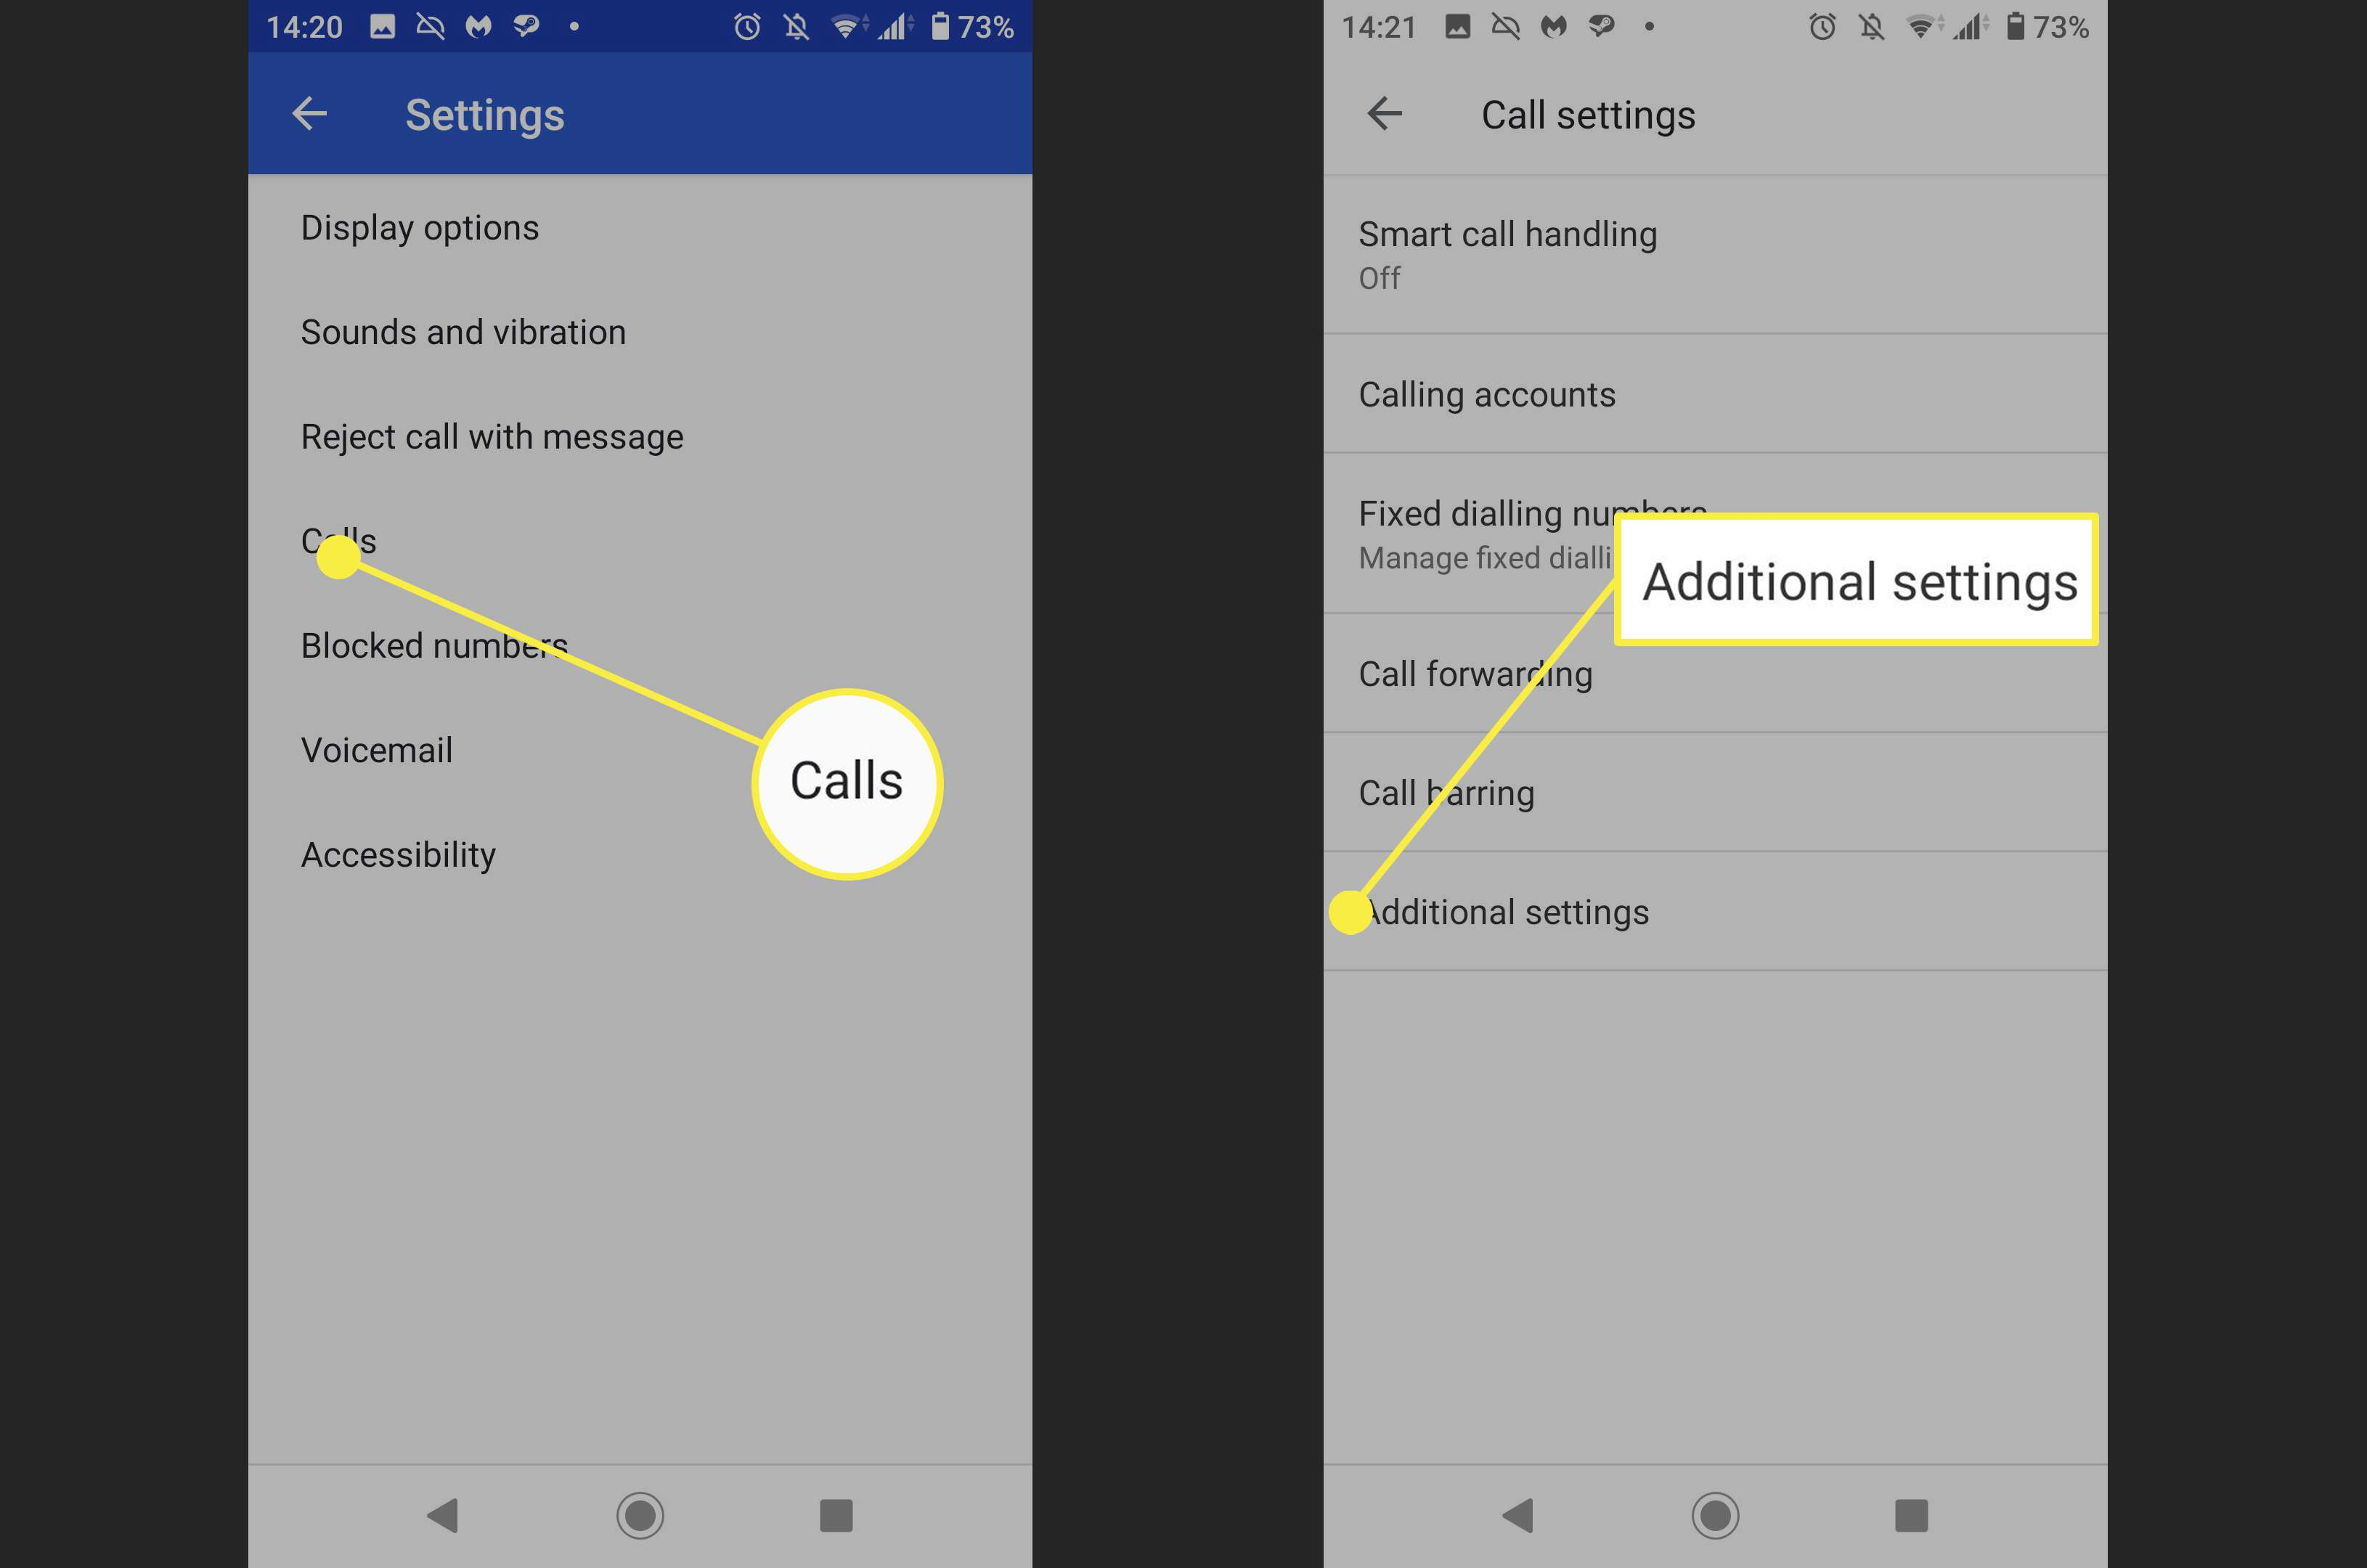 Screenshots of where to find Additional Settings in the Phone app on Android.